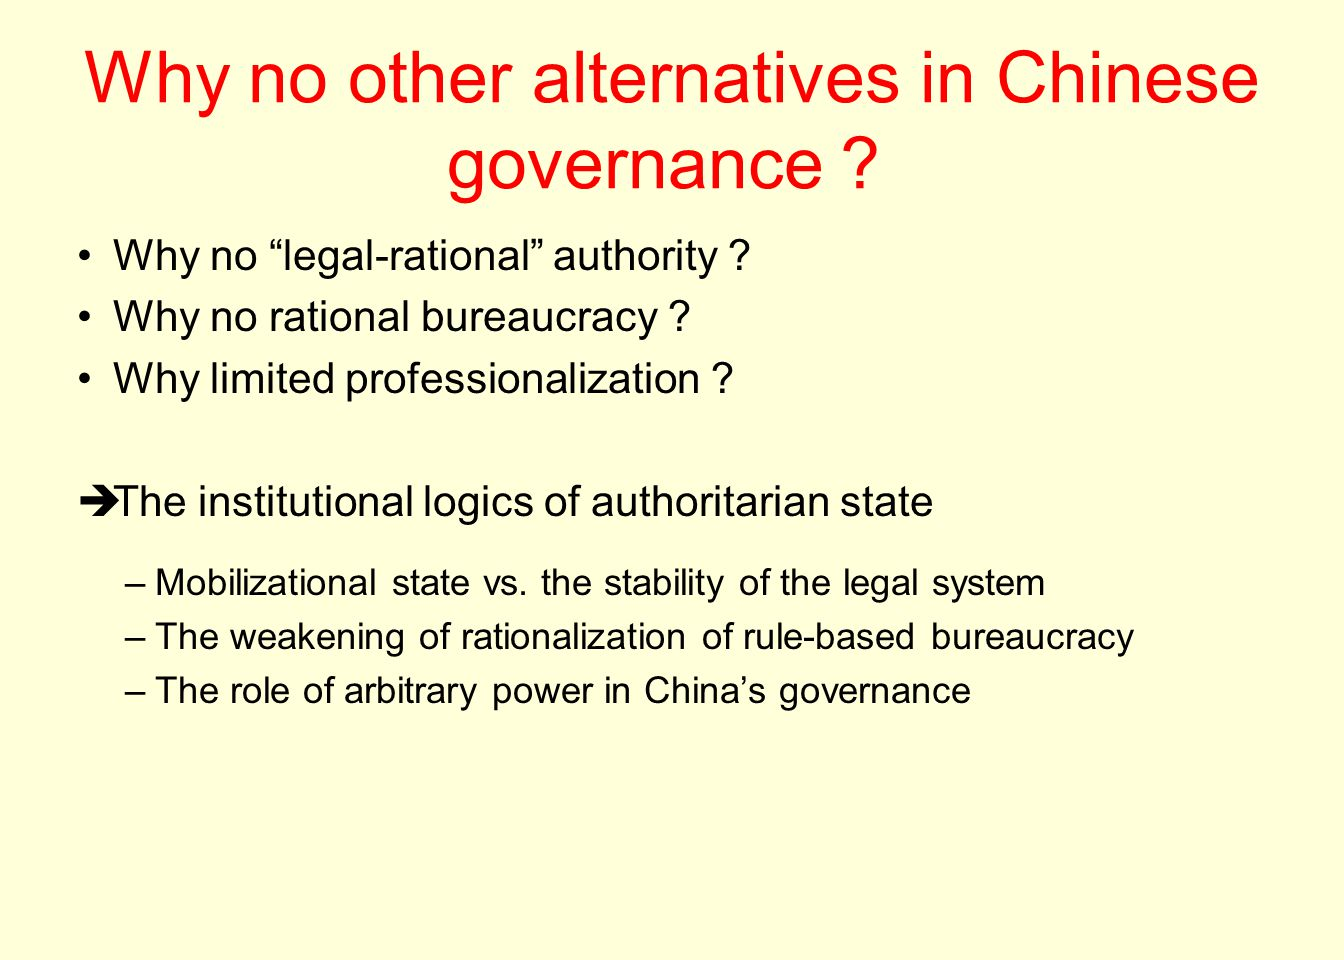 Why no other alternatives in Chinese governance?